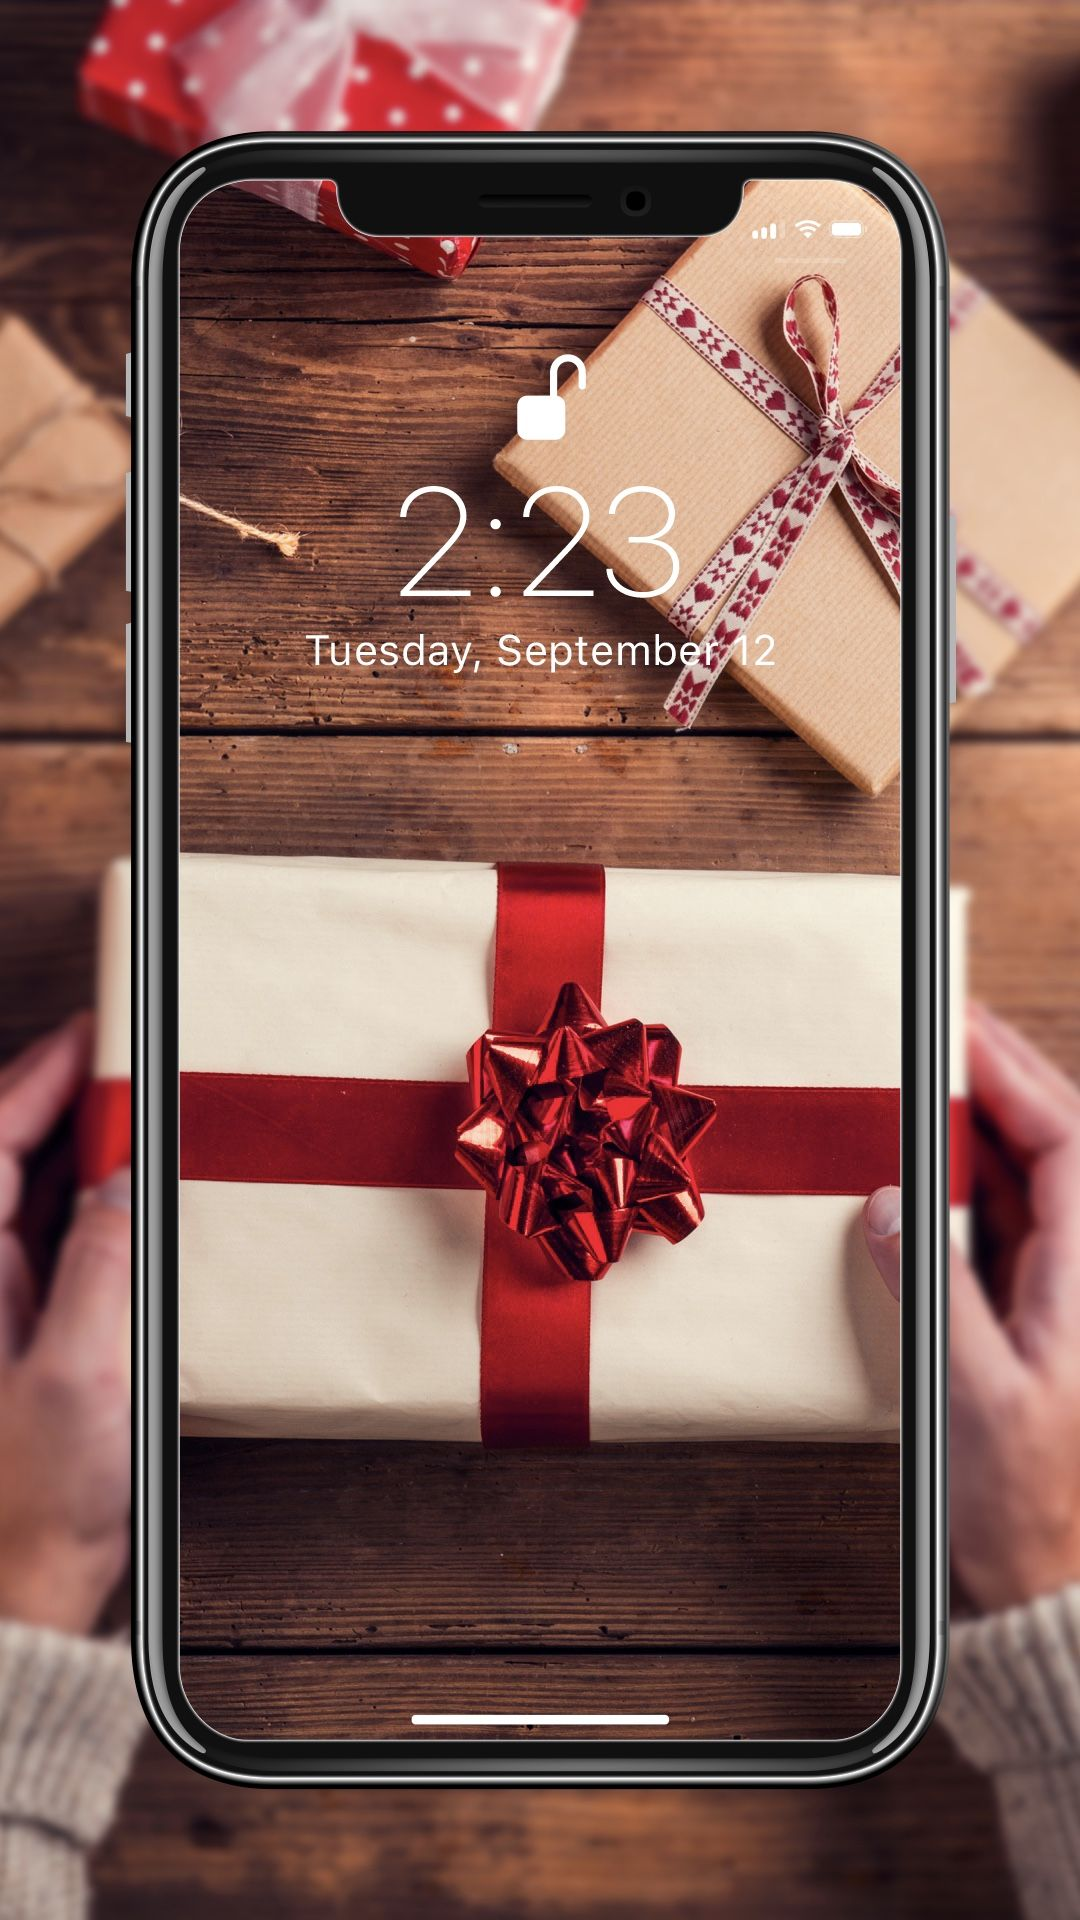 Holiday wallpaper for your iPhone 8 Plus from Everpix🎁 #wallpapers #christmas #christmaswallpaper #sfondi #papeisdeparede #christmasbackground